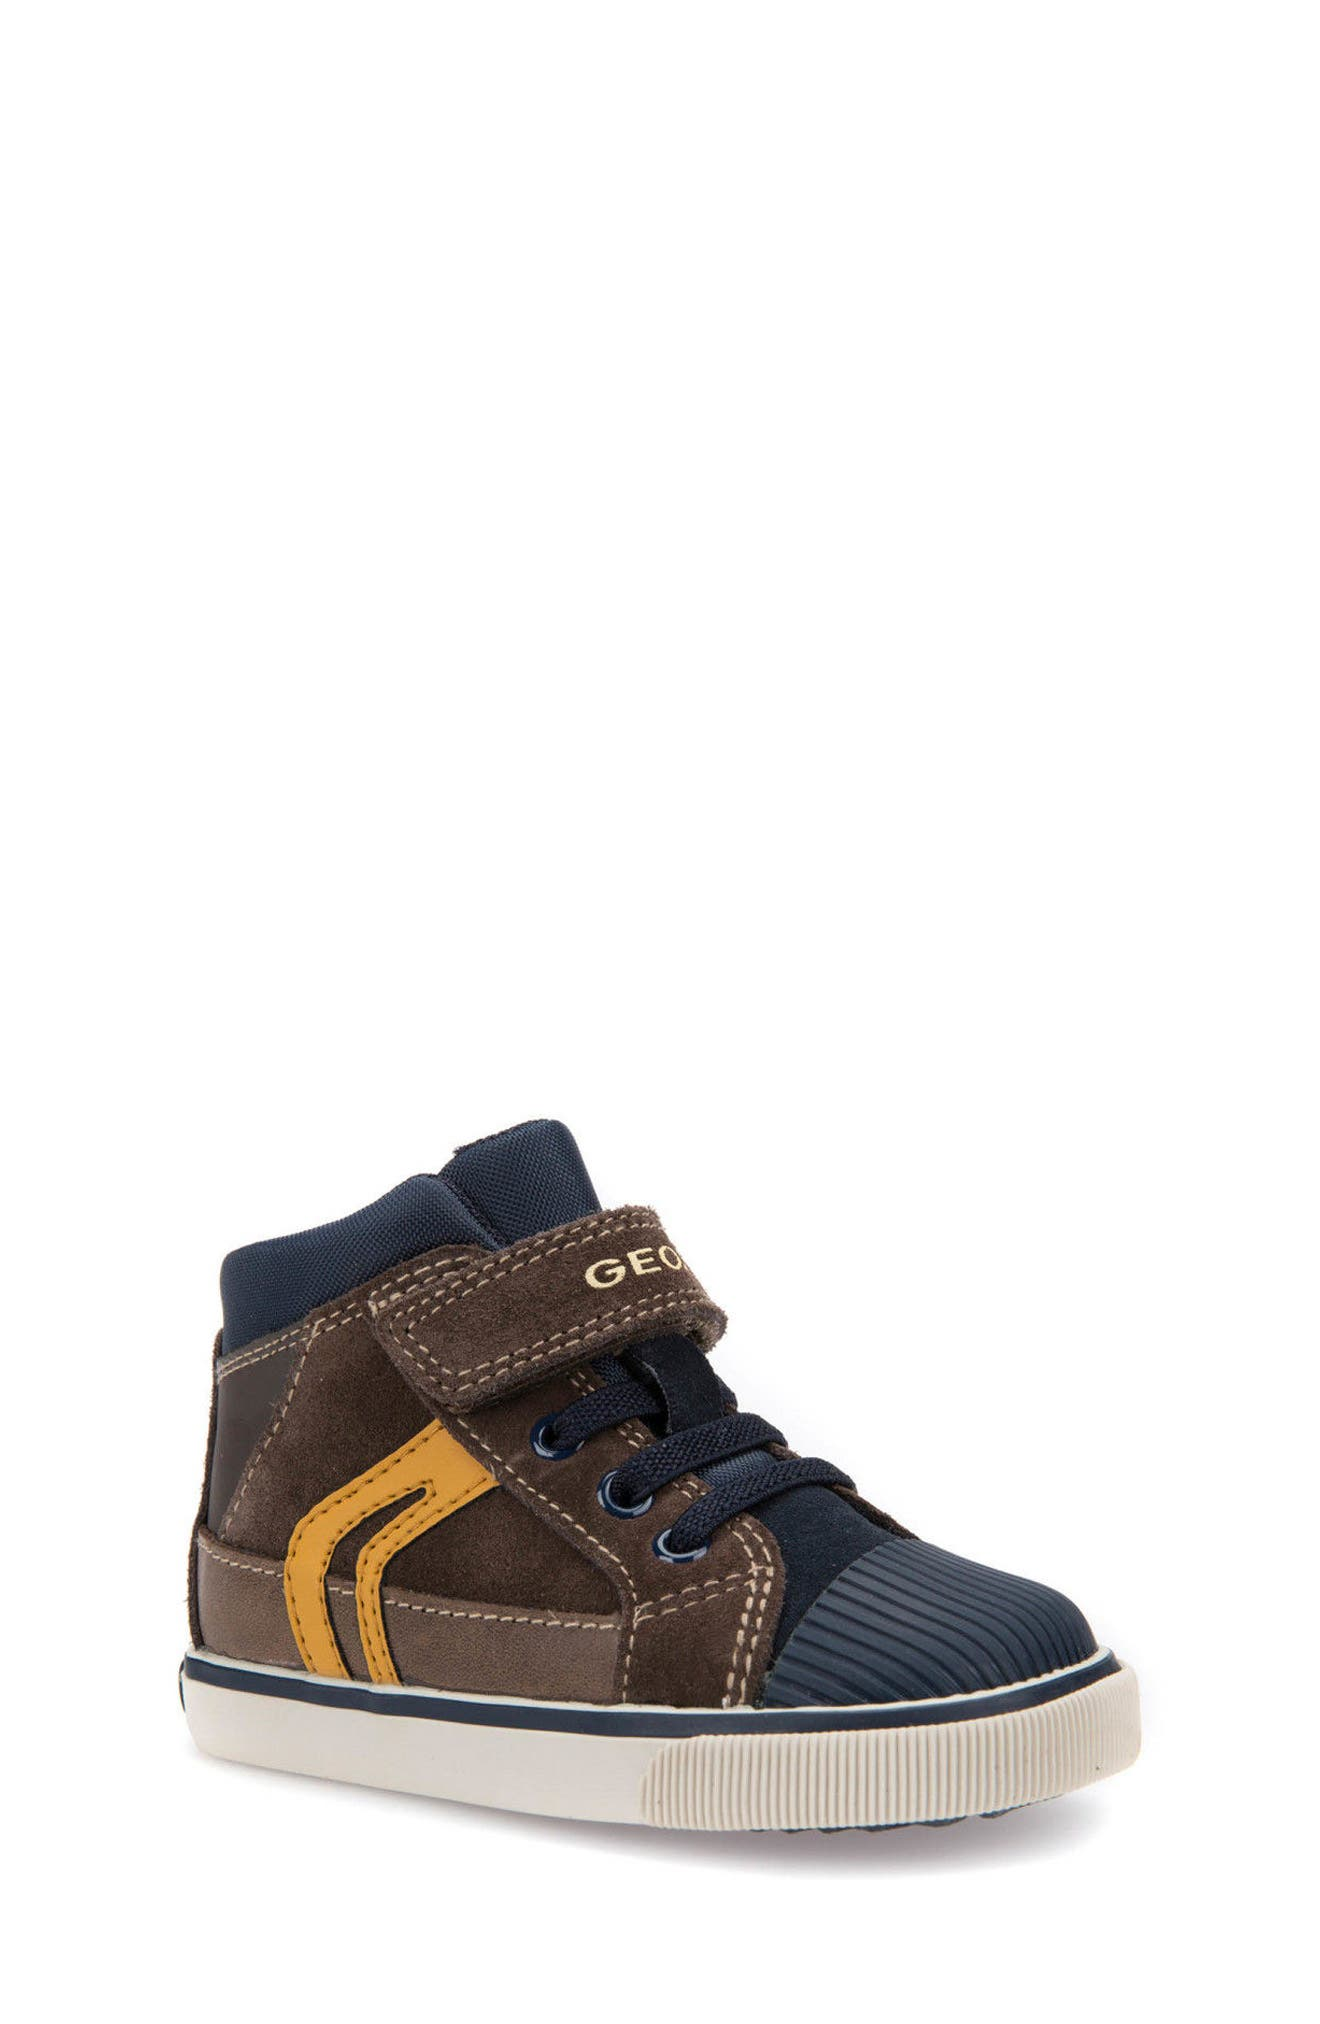 'Kiwi' High Top Sneaker,                             Main thumbnail 1, color,                             Chestnut/ Navy